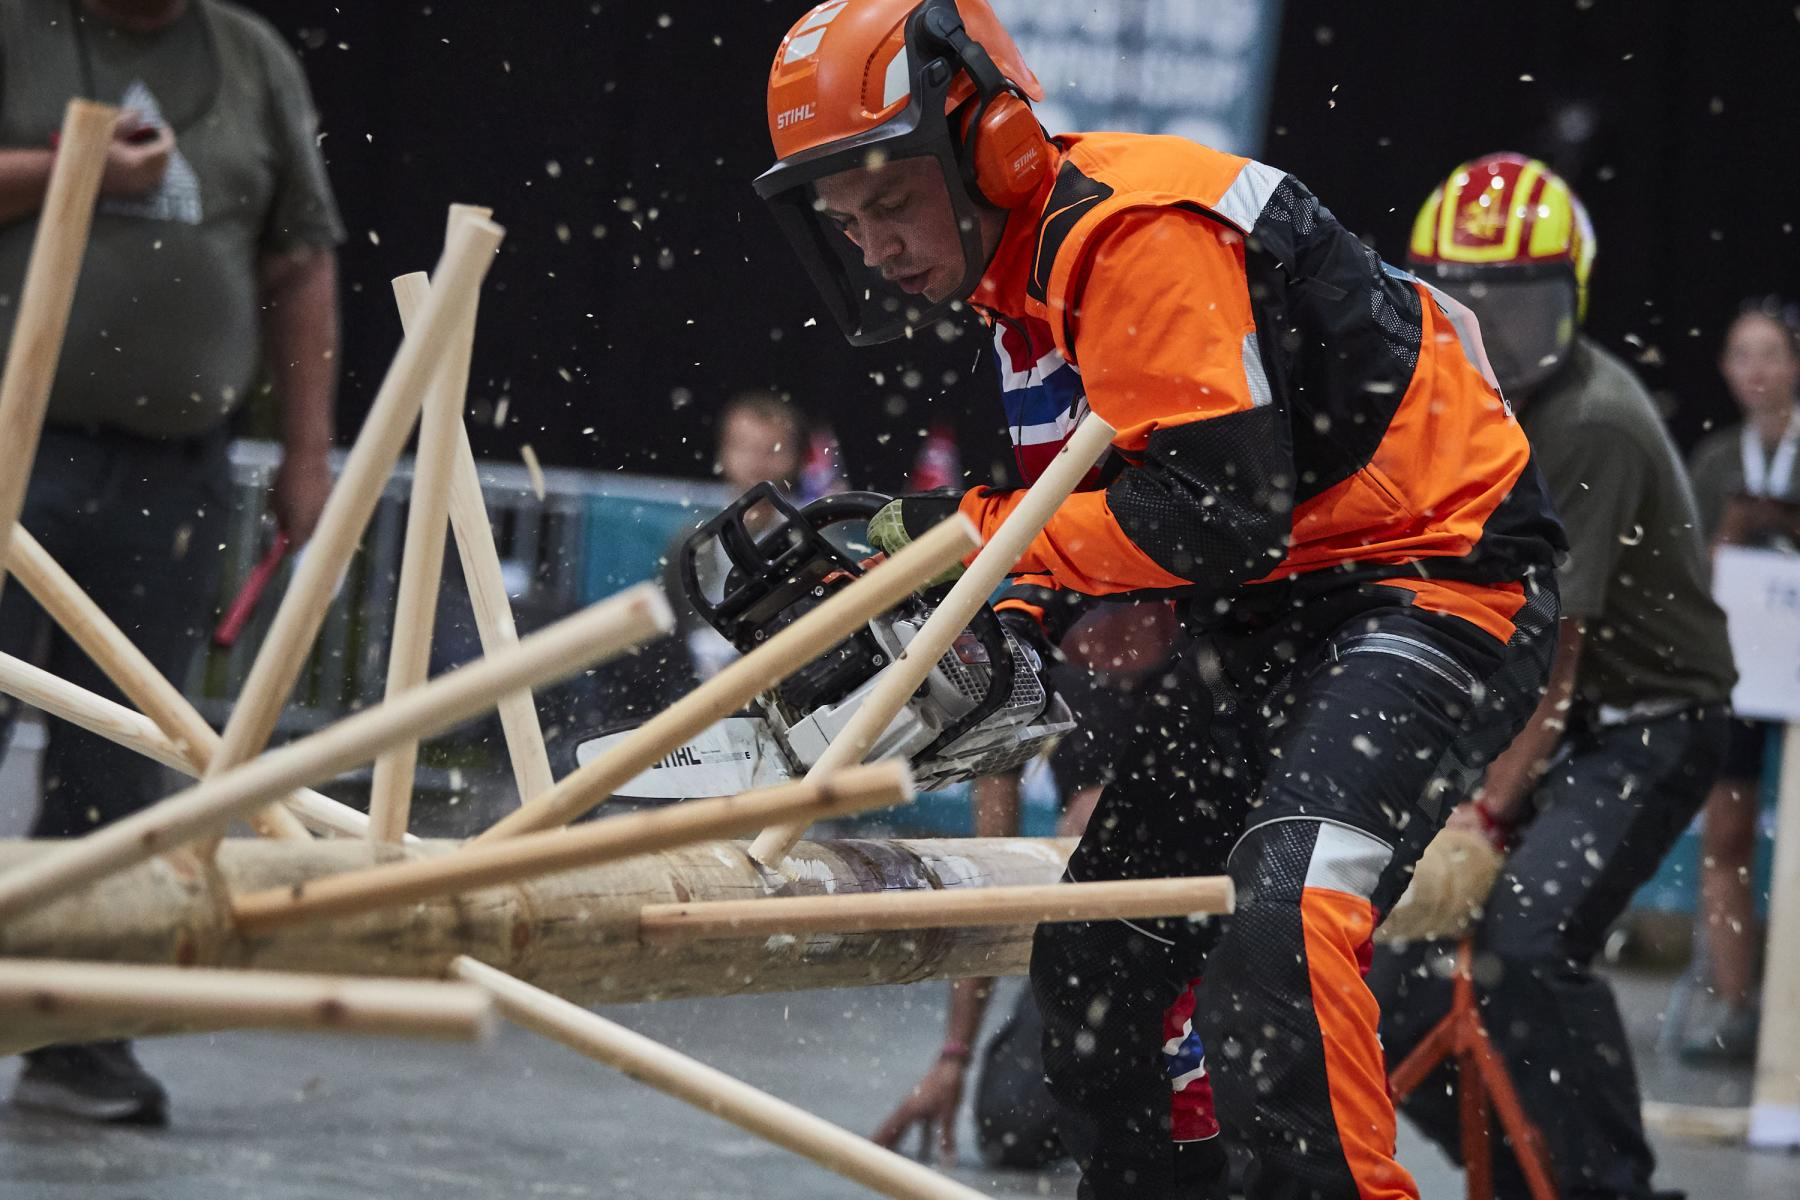 Athlete performs during the World Logging Championship in Lillehammer, Norway on August 5, 2018